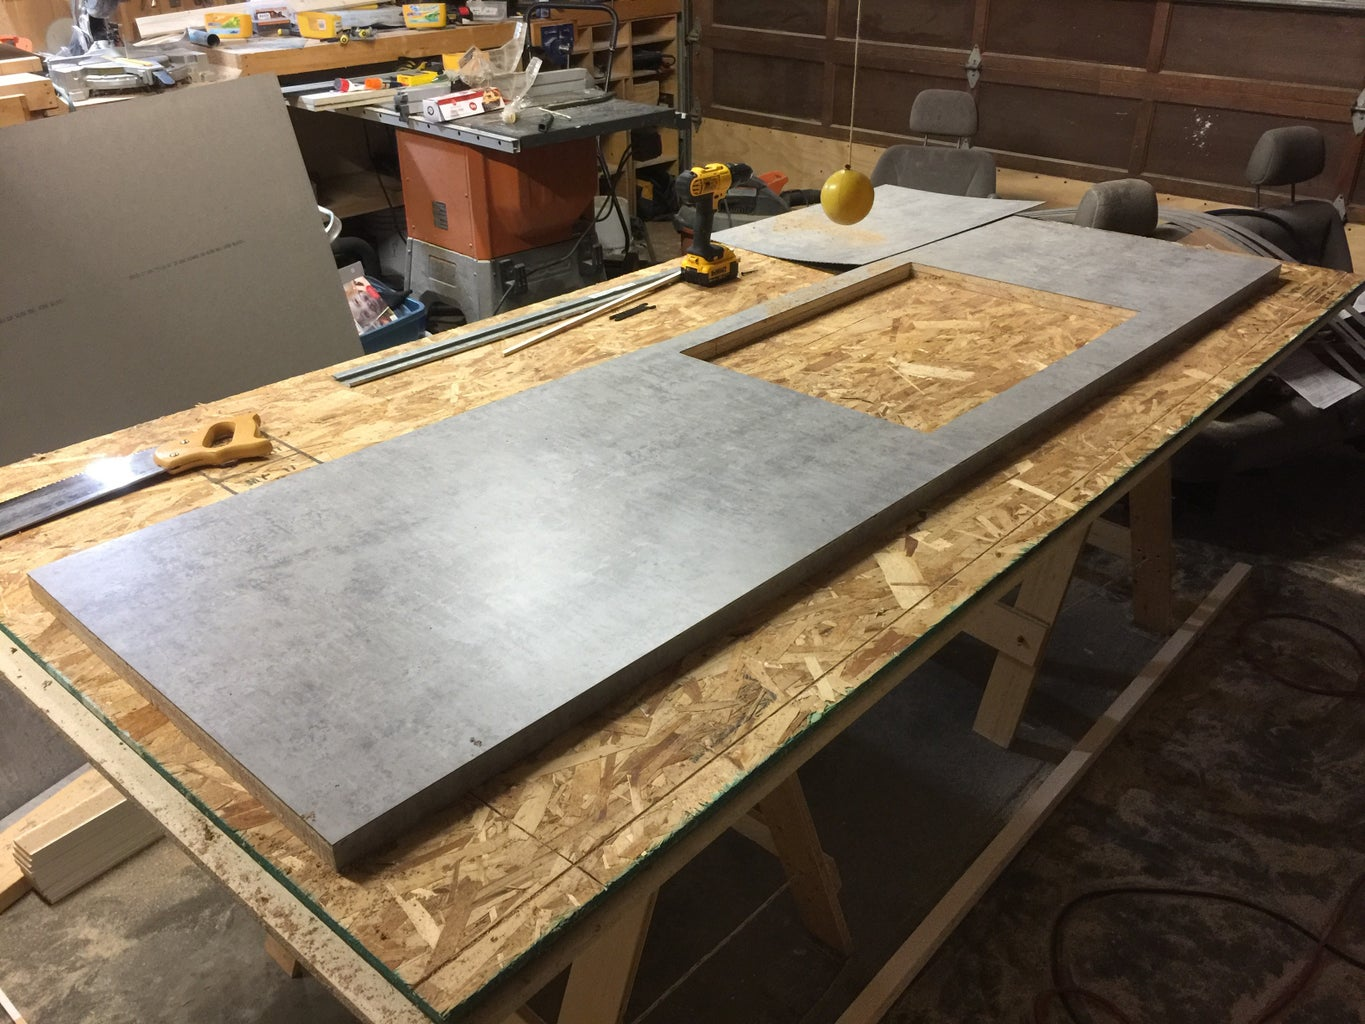 Cut Out Holes and Trim